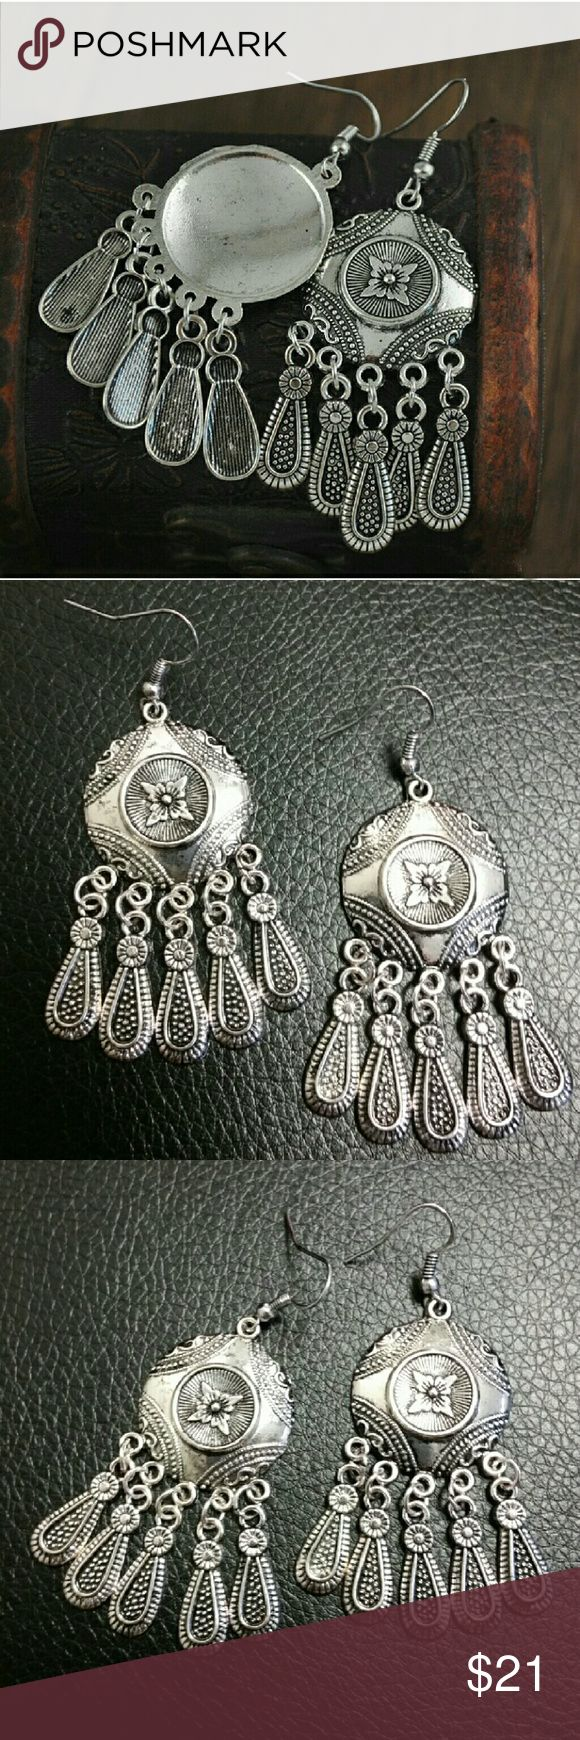 *weekend sale* Embossed silver dangling earrings Eye-catching dangling earrings with teardrop charms and flower detail in the center. Very beautiful for a boho look Jewelry Earrings